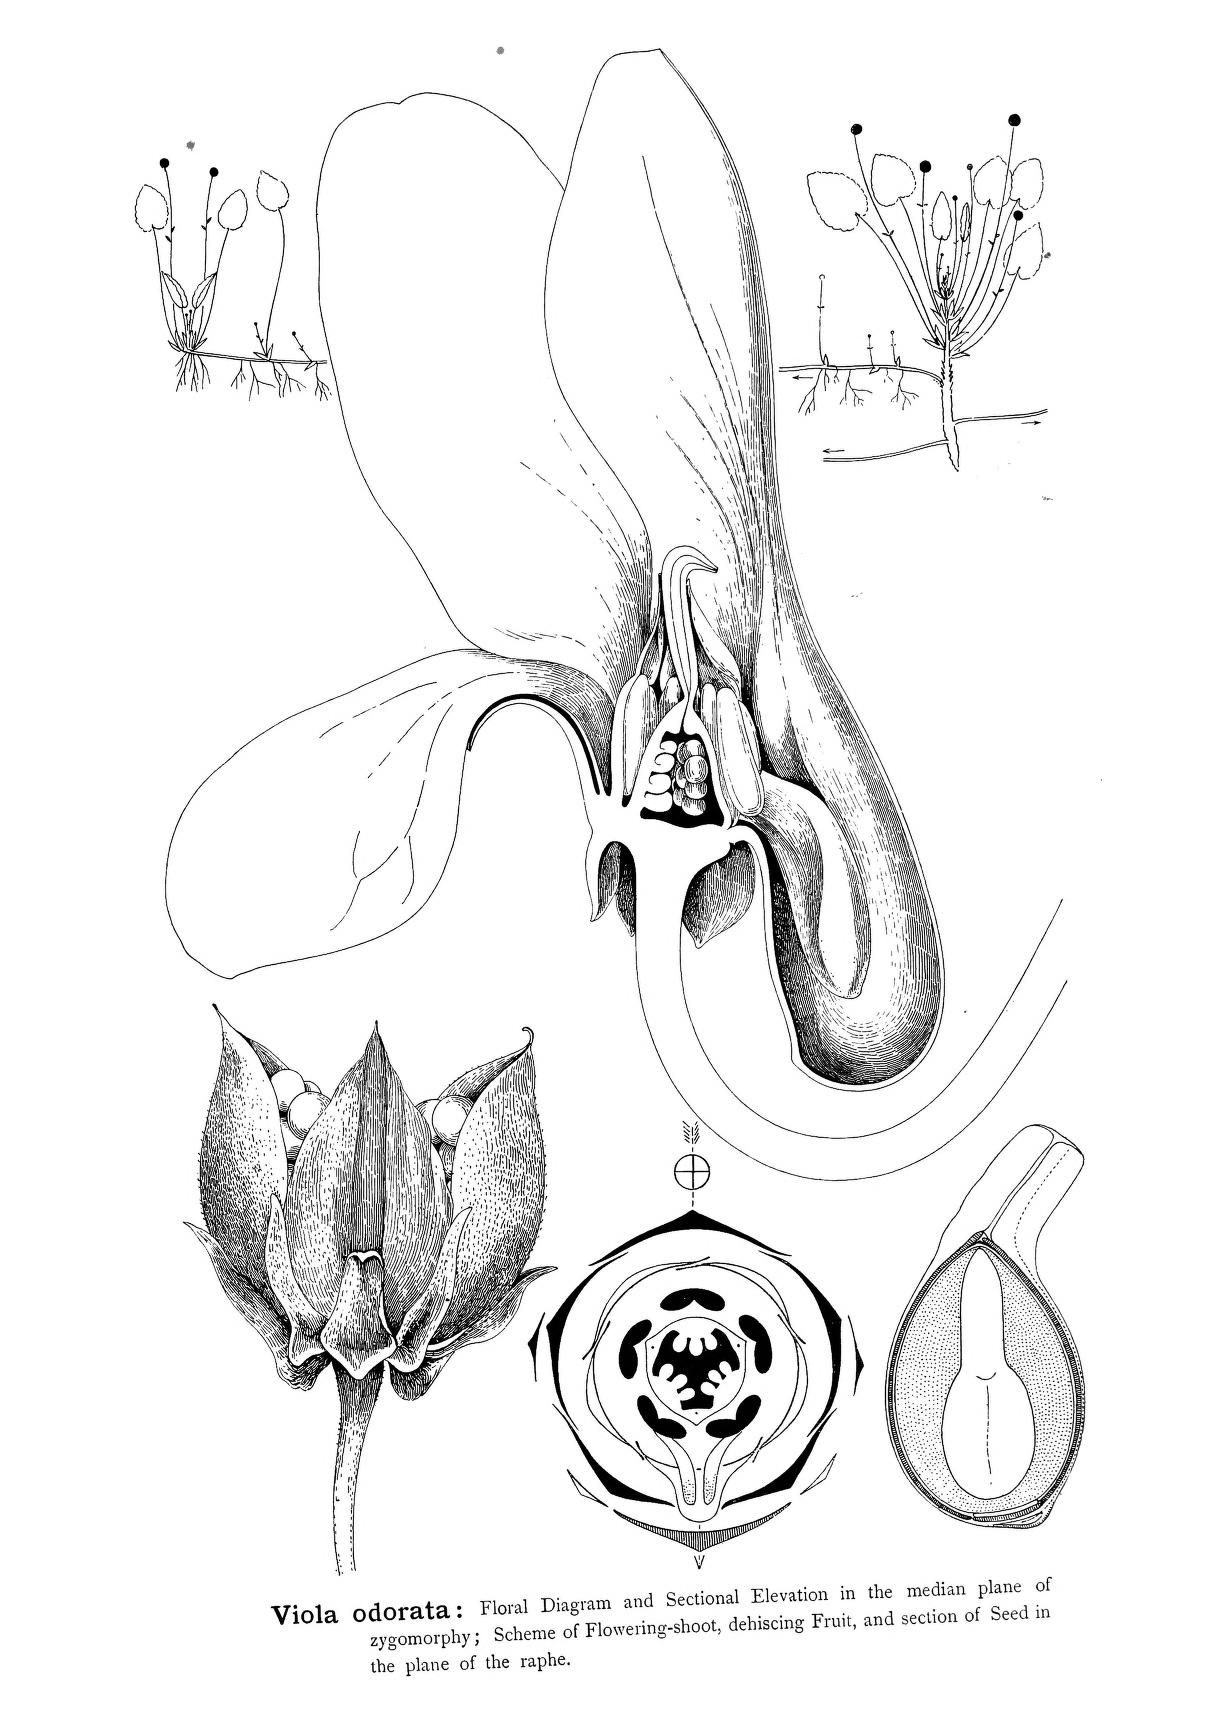 Types Of Floral Mechanism A Selection Of Diagrams And Descriptions Of Common Flowers Arranged As An Introduction To The Systematic Study Of Angiosperms Paperback